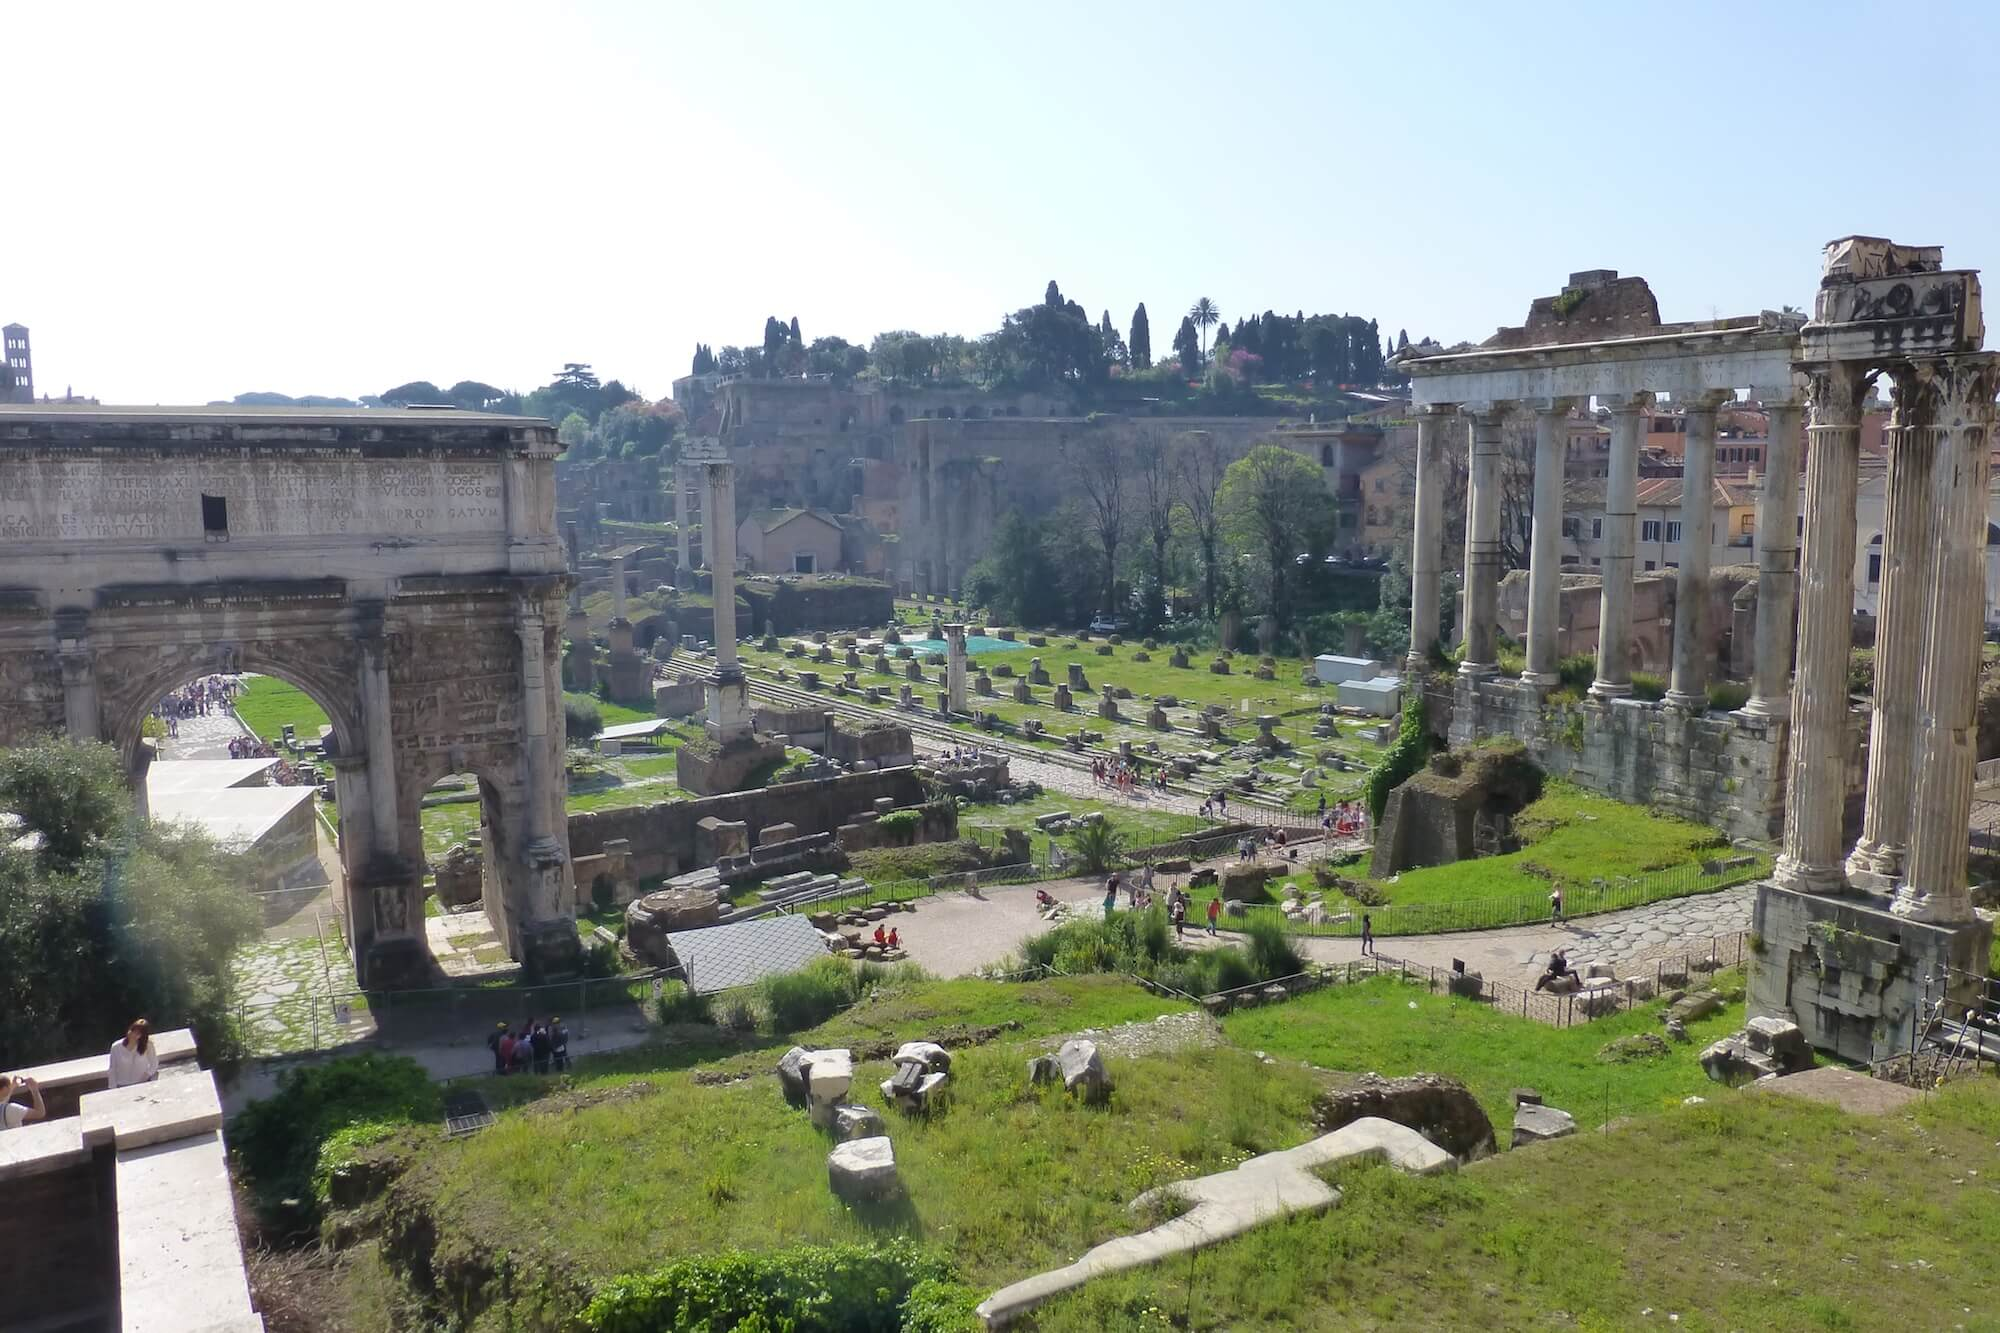 roman forum, looking out over roman forum